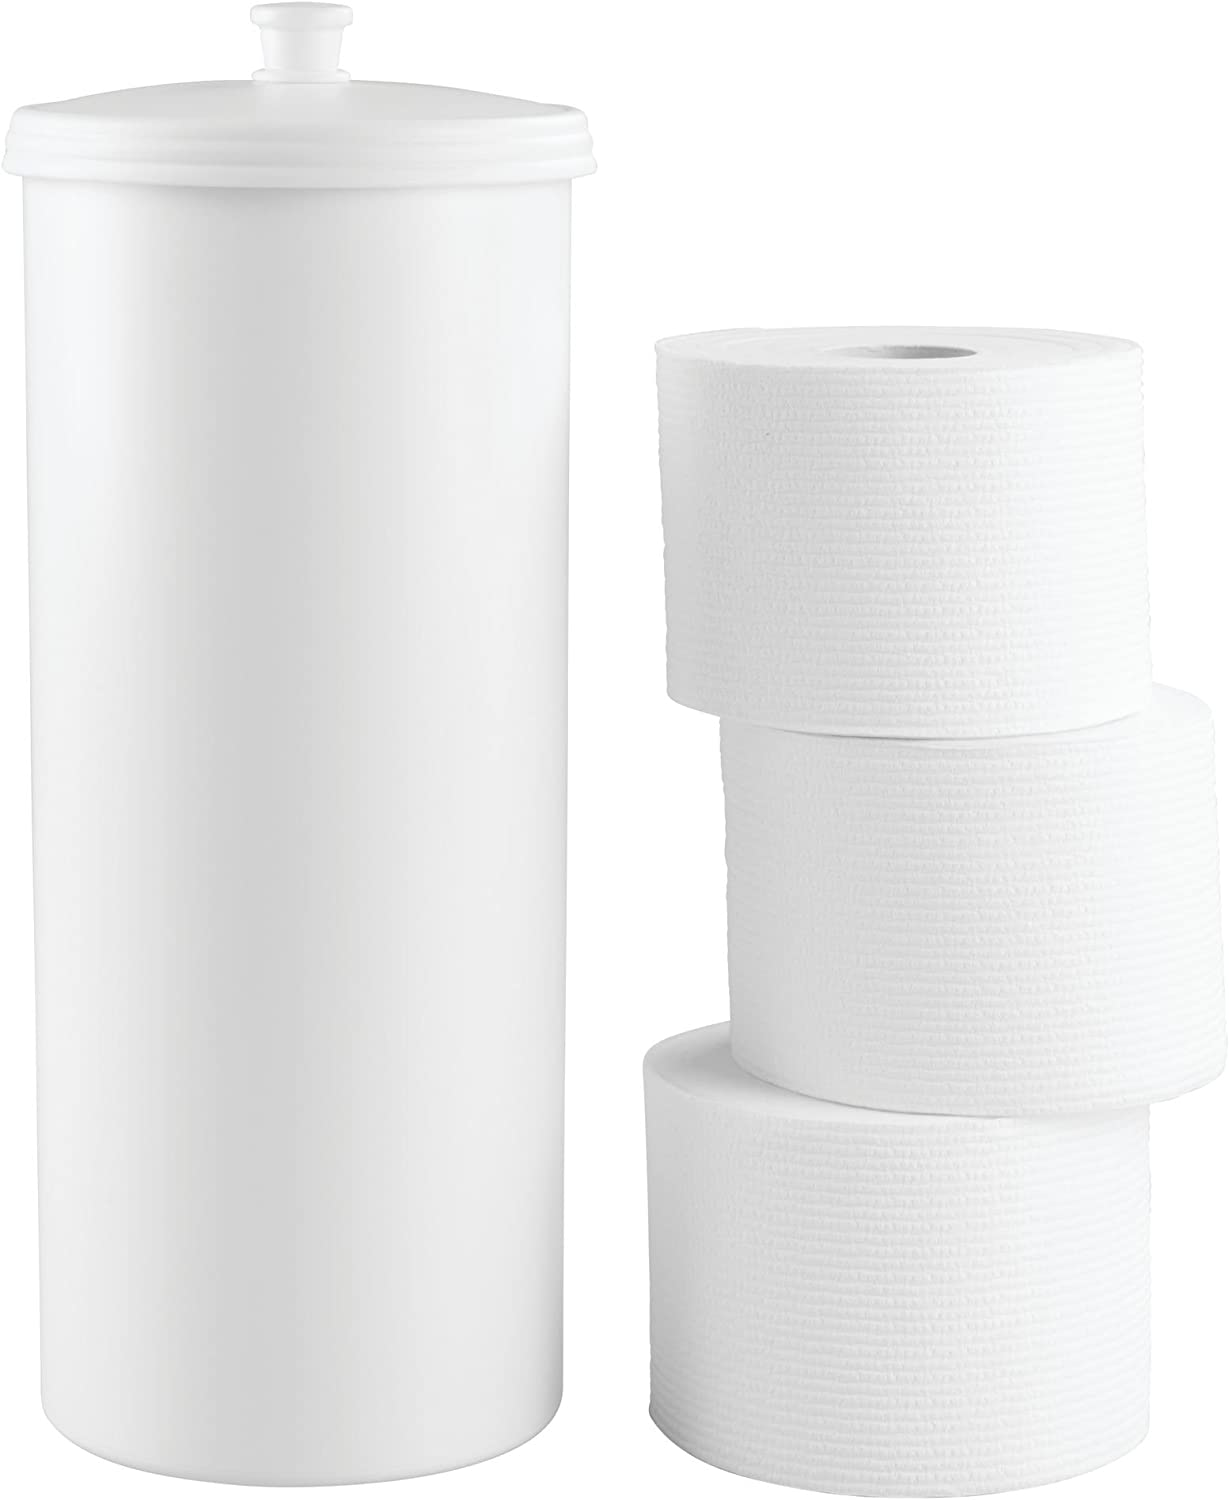 Amazon Com Idesign Kent Plastic Toilet Paper Tissue Roll Reserve Canister Free Standing Organizer For Master Guest Kid S Office Bathroom Or Closet 6 25 X 6 25 X 15 5 White Home Kitchen